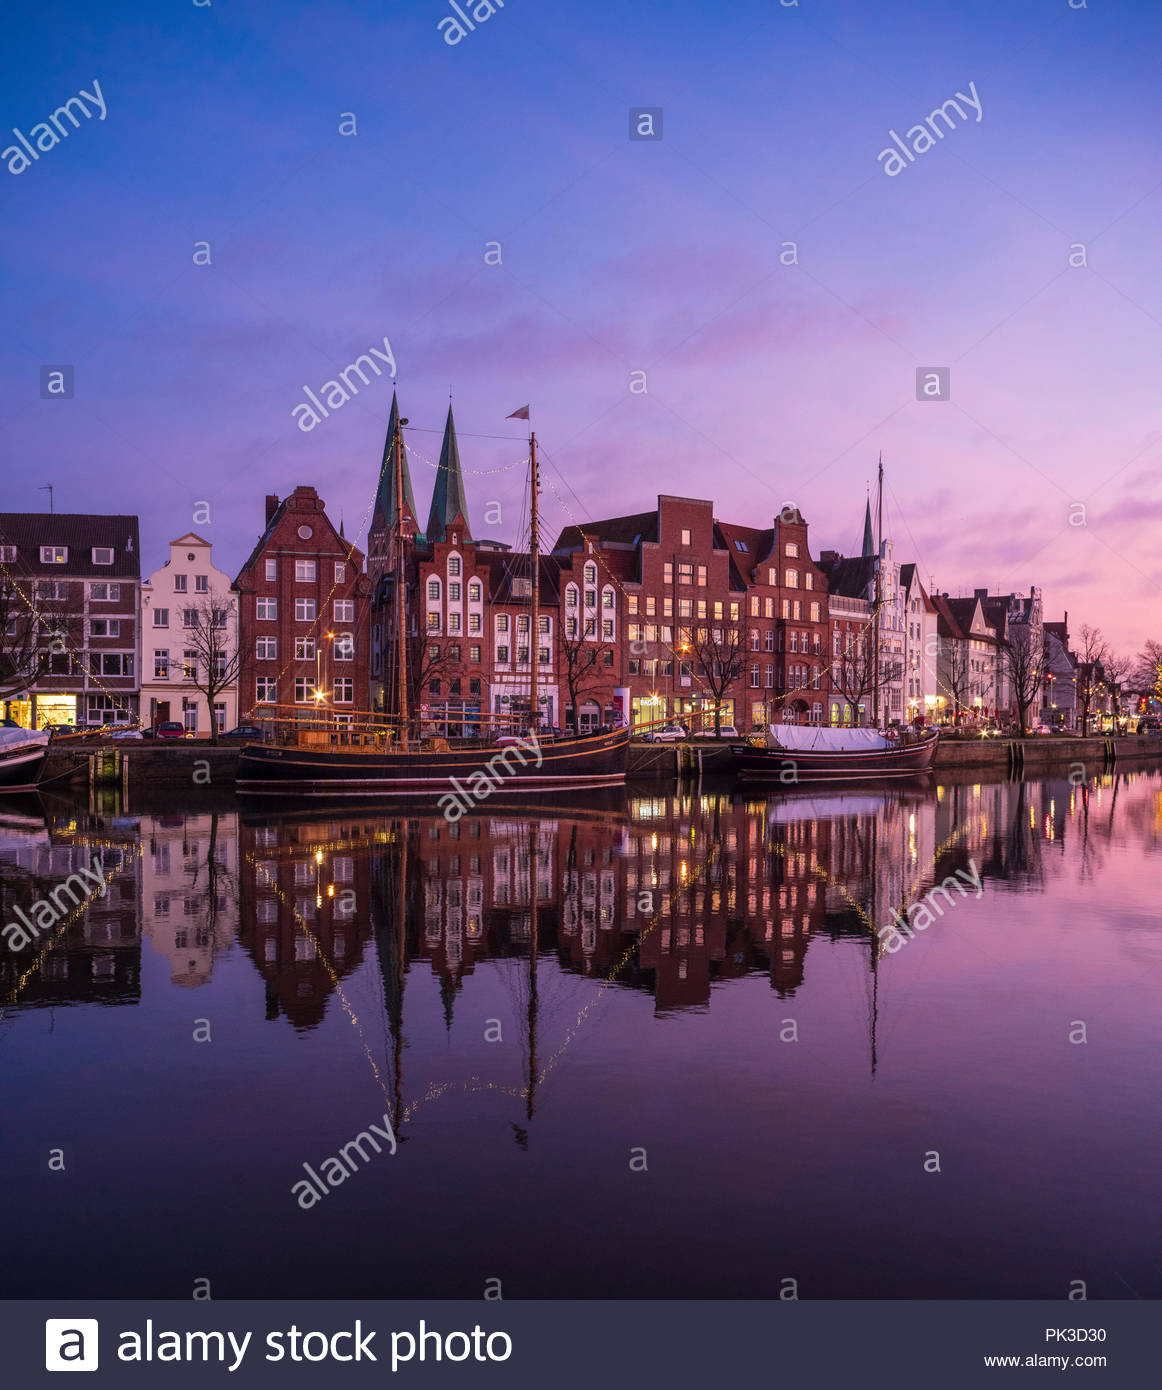 View over the old town and the harbour of Lübeck after sunset - Stock Image